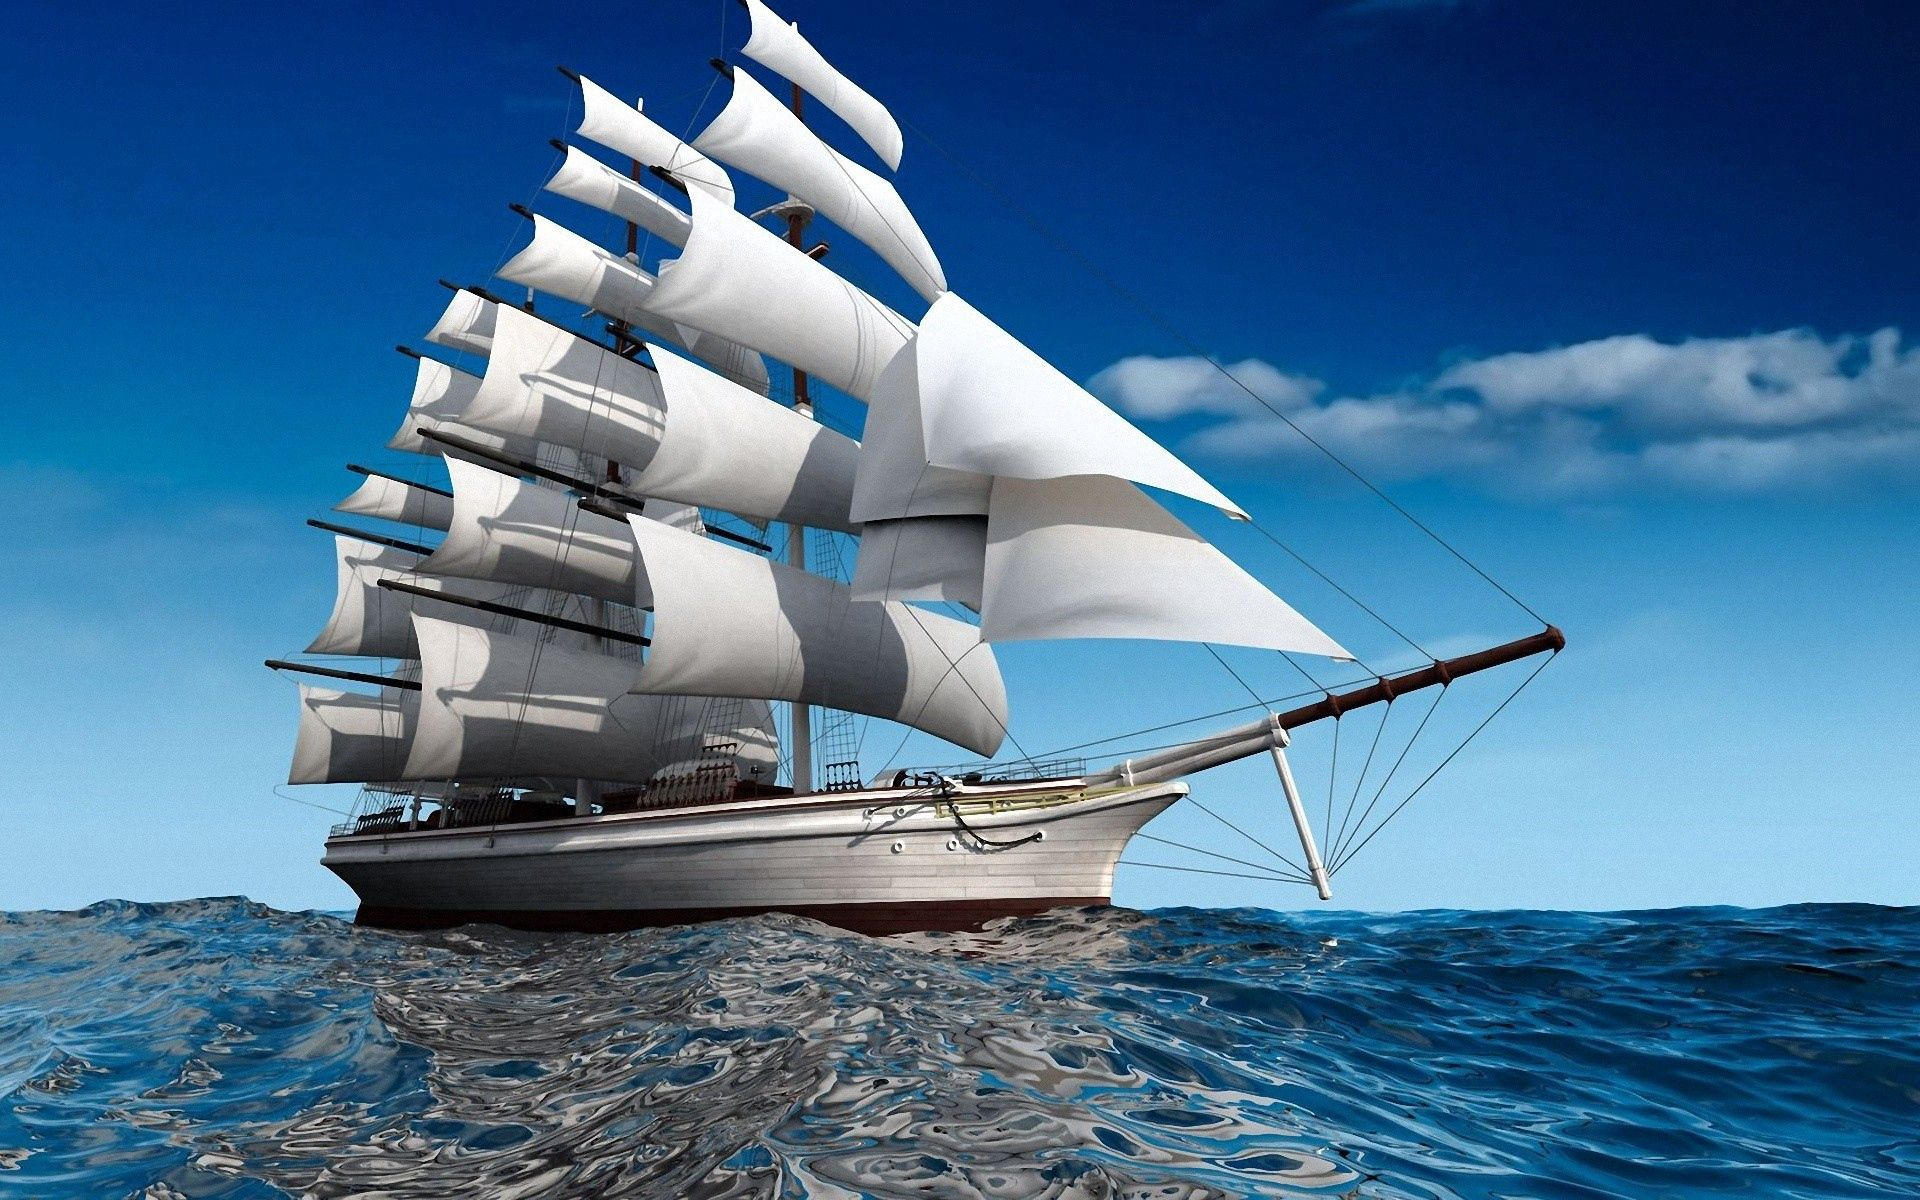 58328 download wallpaper Sea, Swimming, Miscellanea, Miscellaneous, Sail, Ship screensavers and pictures for free